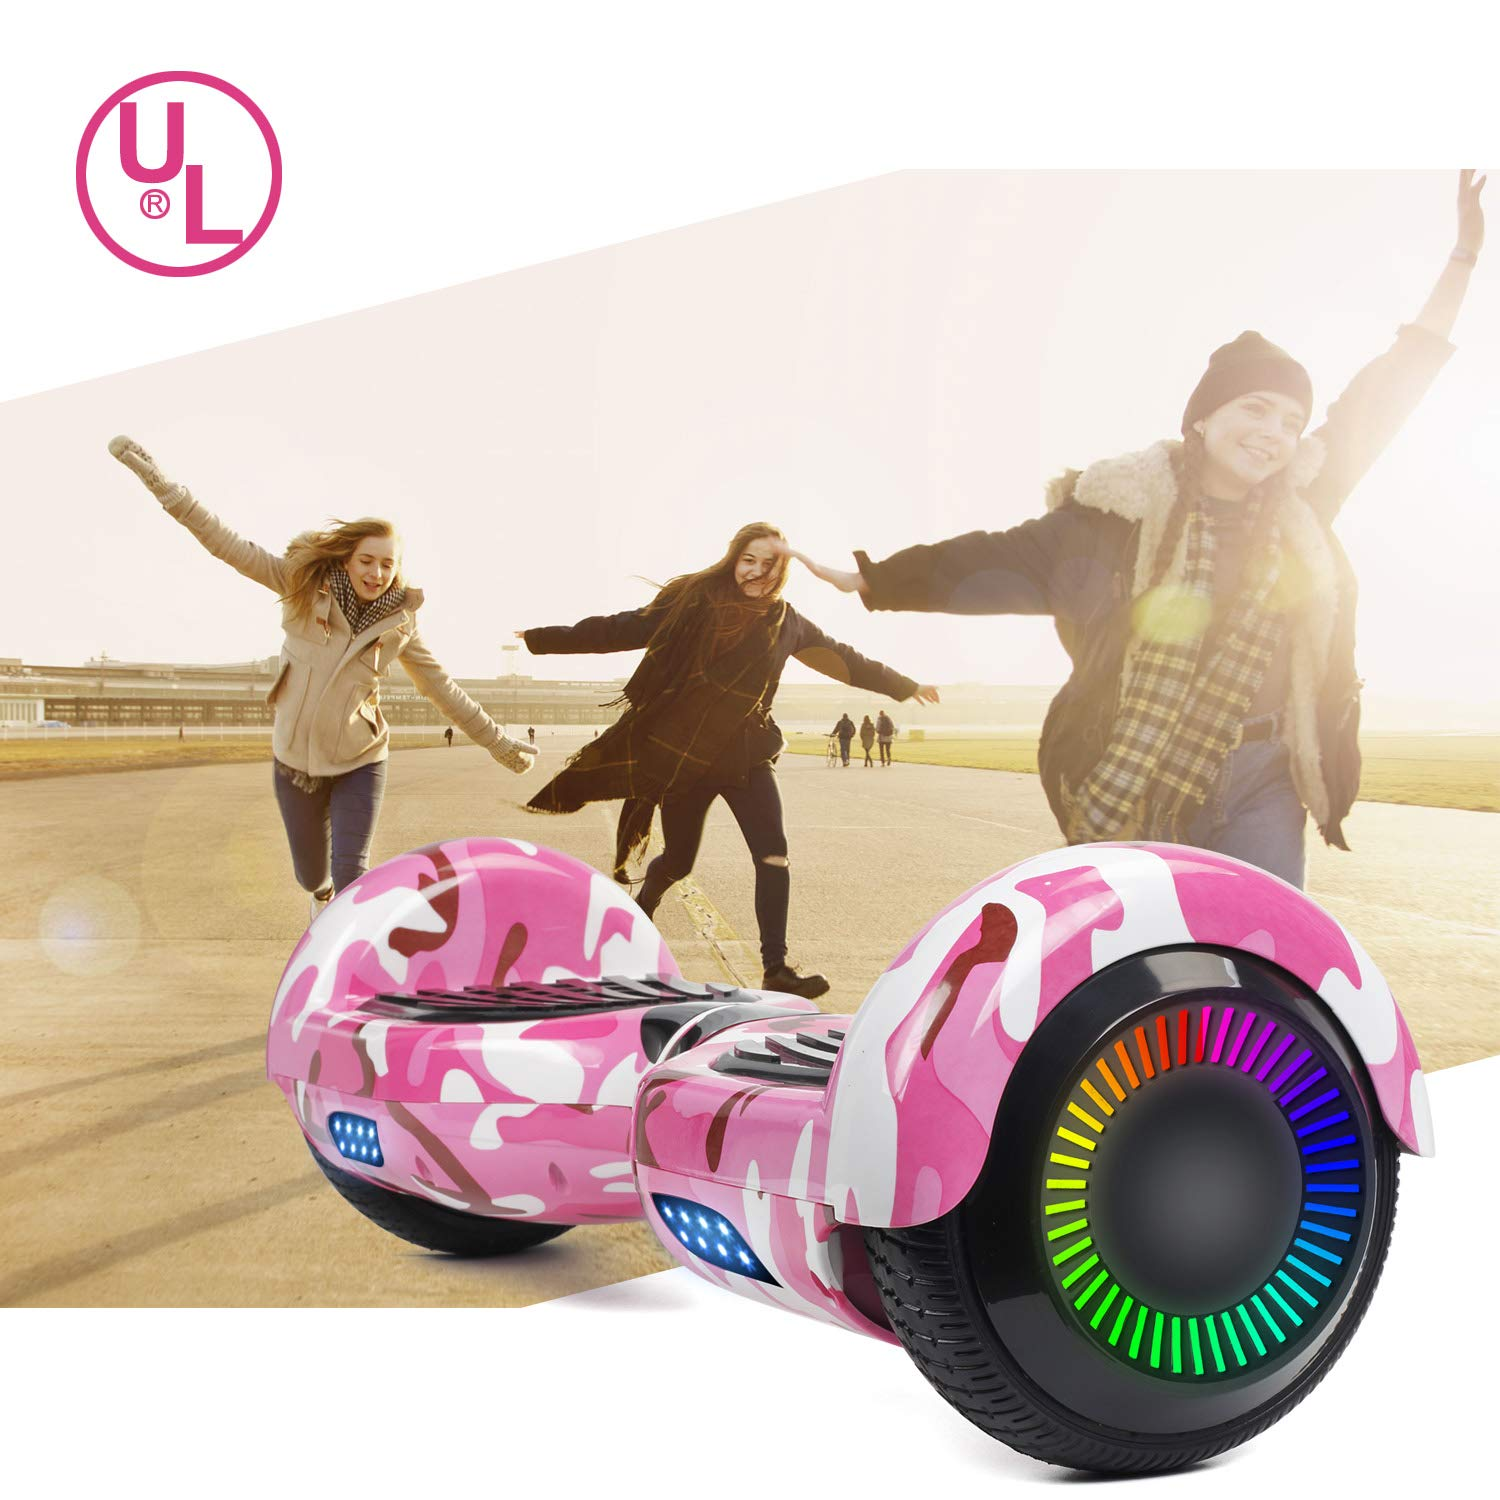 SISIGAD Hoverboard Self Balancing Scooter 6.5'' Two-Wheel Self Balancing Hoverboard with LED Lights Electric Scooter for Adult Kids Gift UL 2272 Certified Fun Edition - Pink Camou by SISIGAD (Image #7)